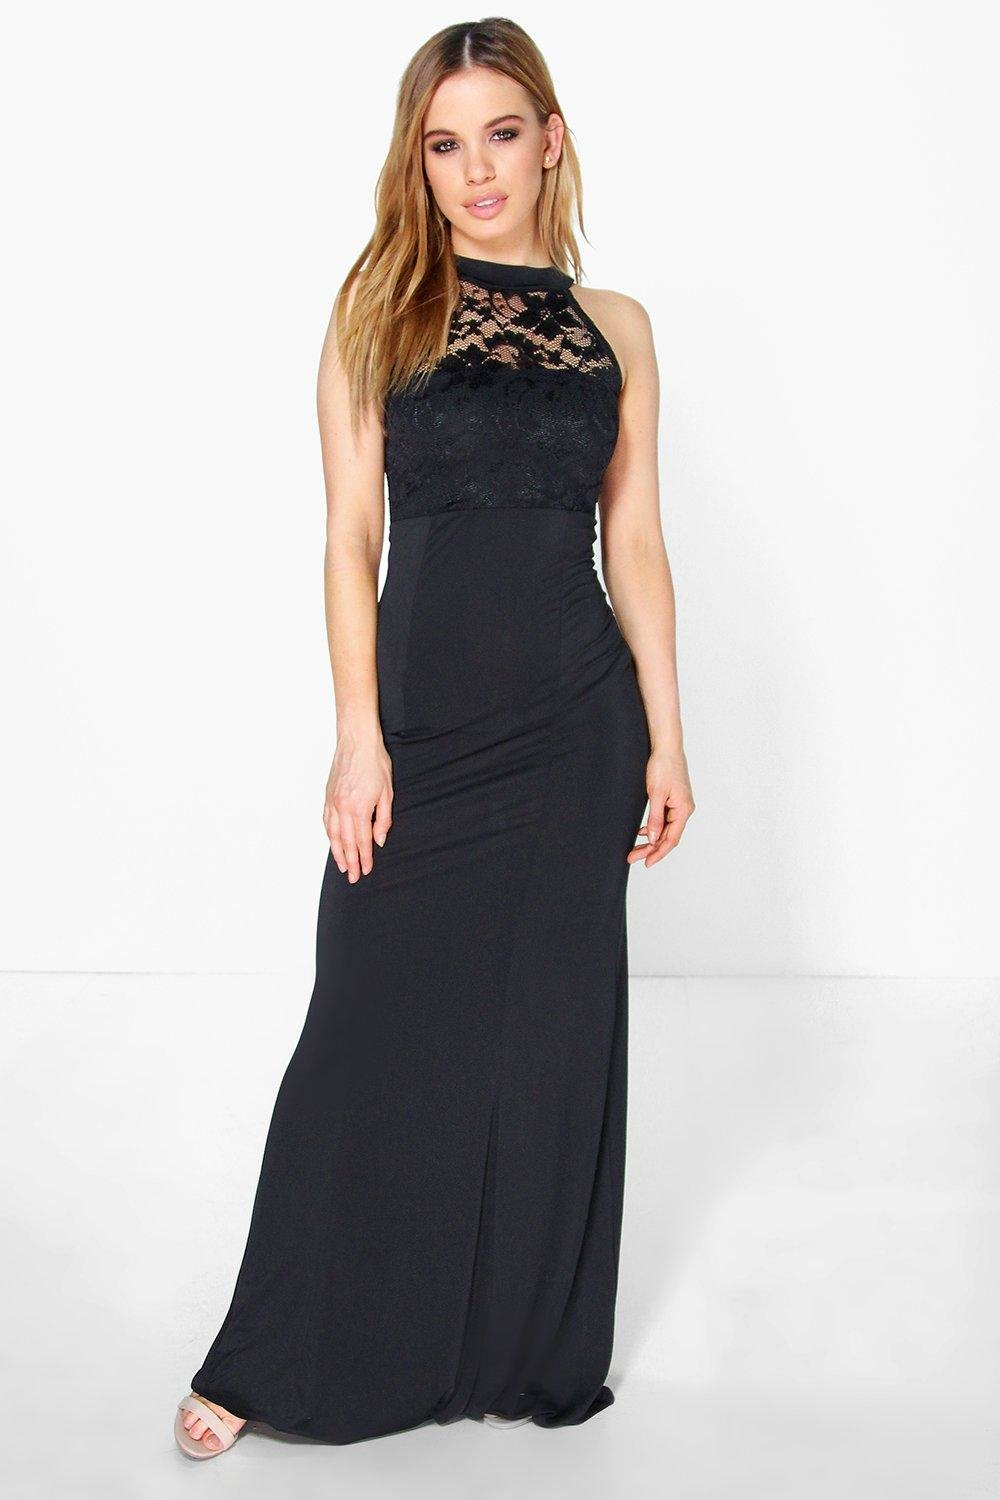 boohoo petite kirsty lace panel slinky maxi dress in black